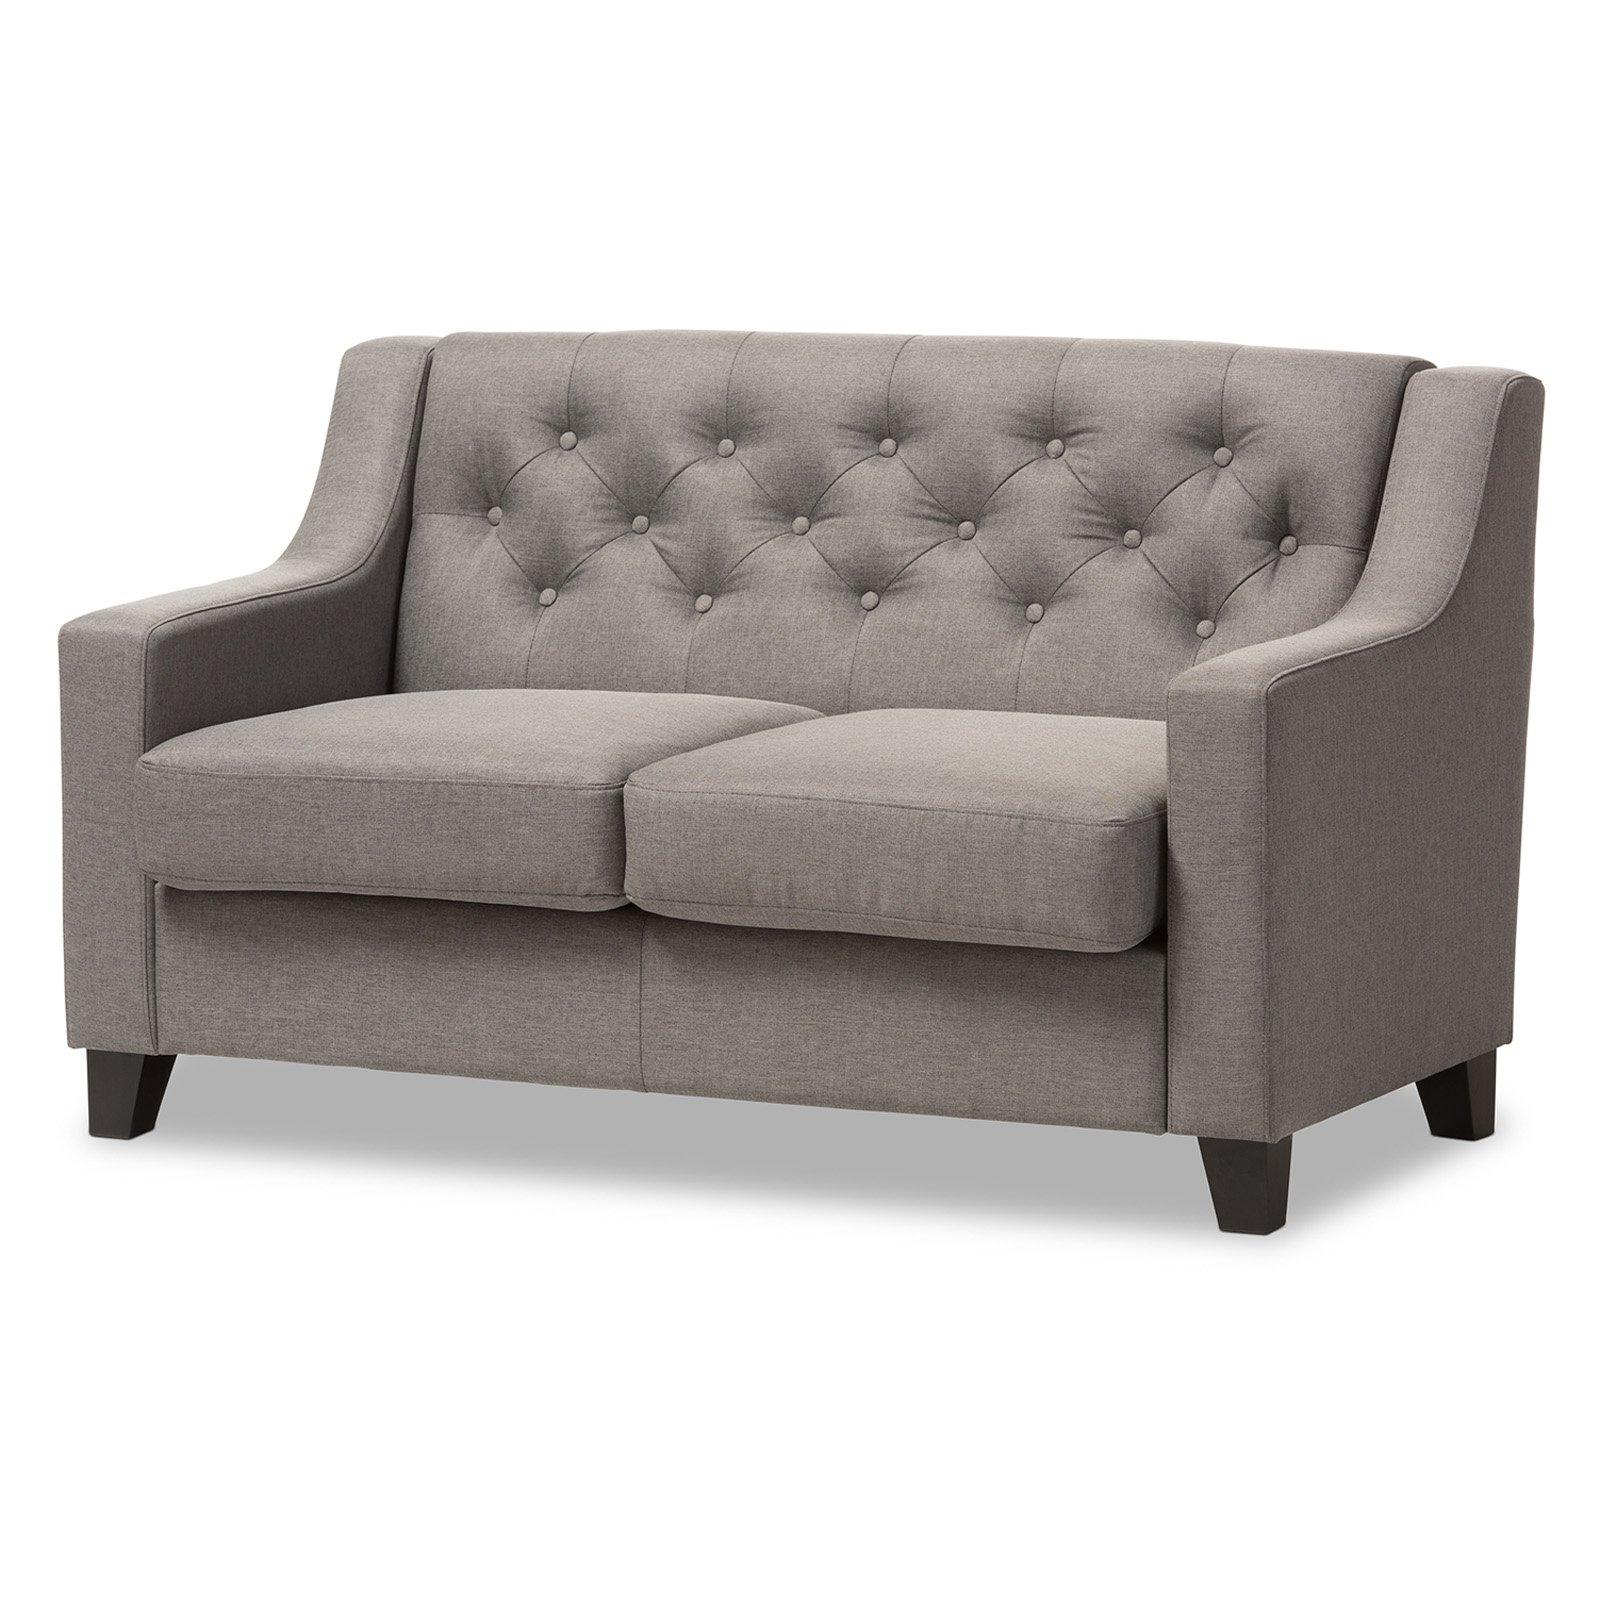 Baxton Studio Arcadia Modern and Contemporary Fabric Upholstered Button-Tufted Living Room 2-Seater Loveseat, Multiple Colors